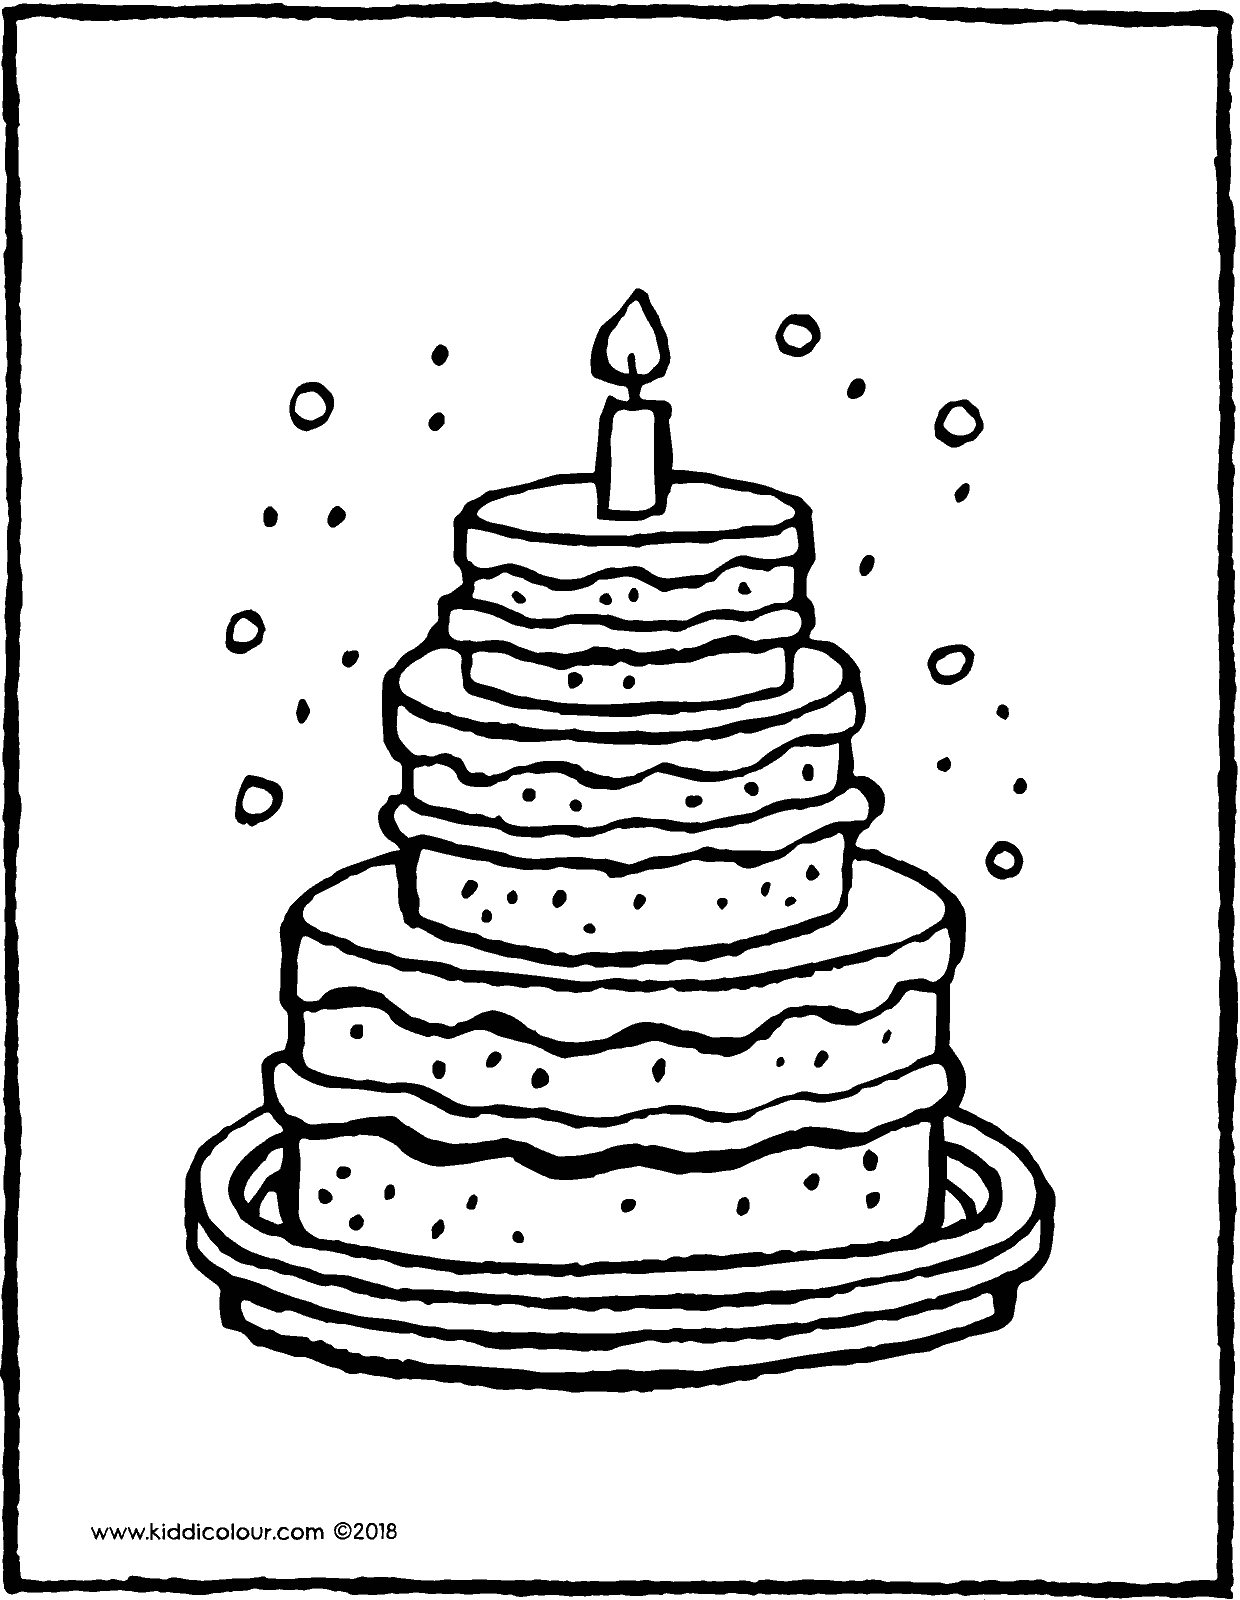 big cake with 1 candle colouring page drawing picture 01V